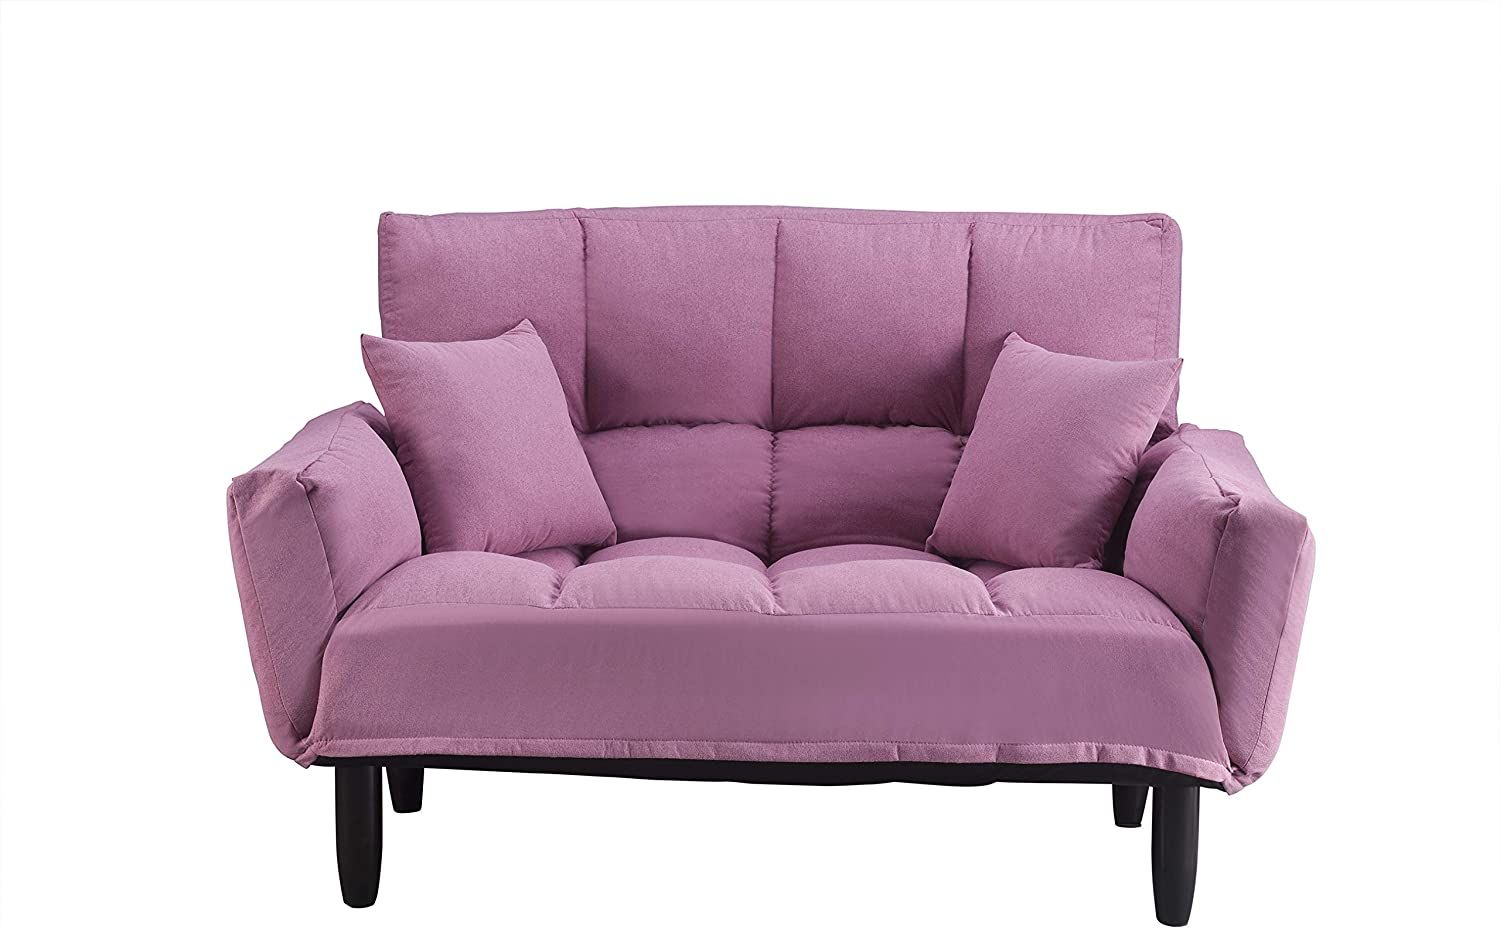 Modern Round Arm Sofa Tufted Sleeper Couches With Solid Wood Legs Bed Recliner Couch Pink Furniture Sofa Couch In 2020 Recliner Couch Sleeper Couch Modern Round